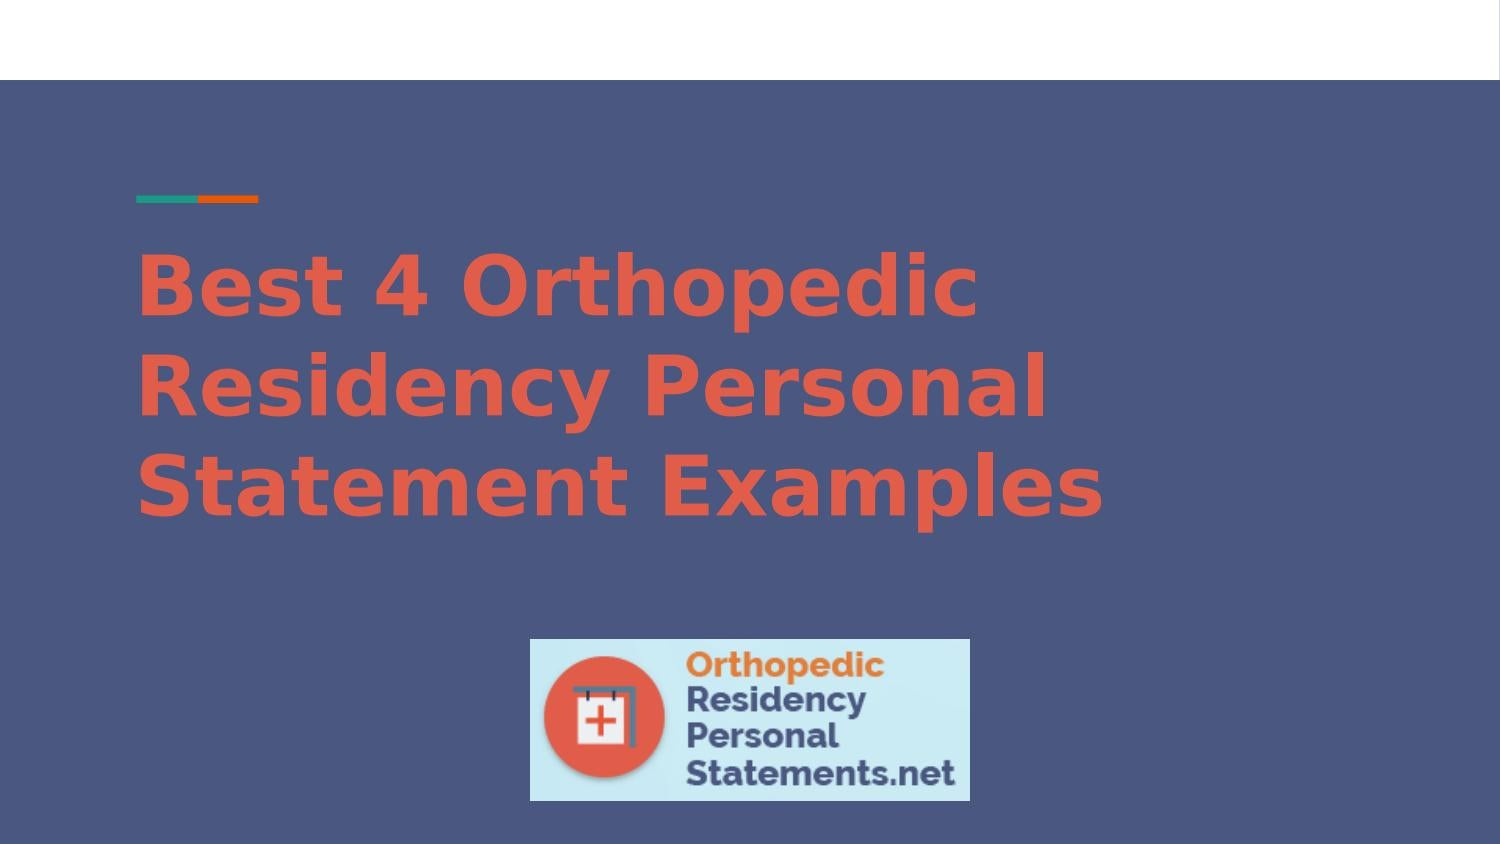 Best 4 Orthopedic Residency Personal Statement Examples by Residency